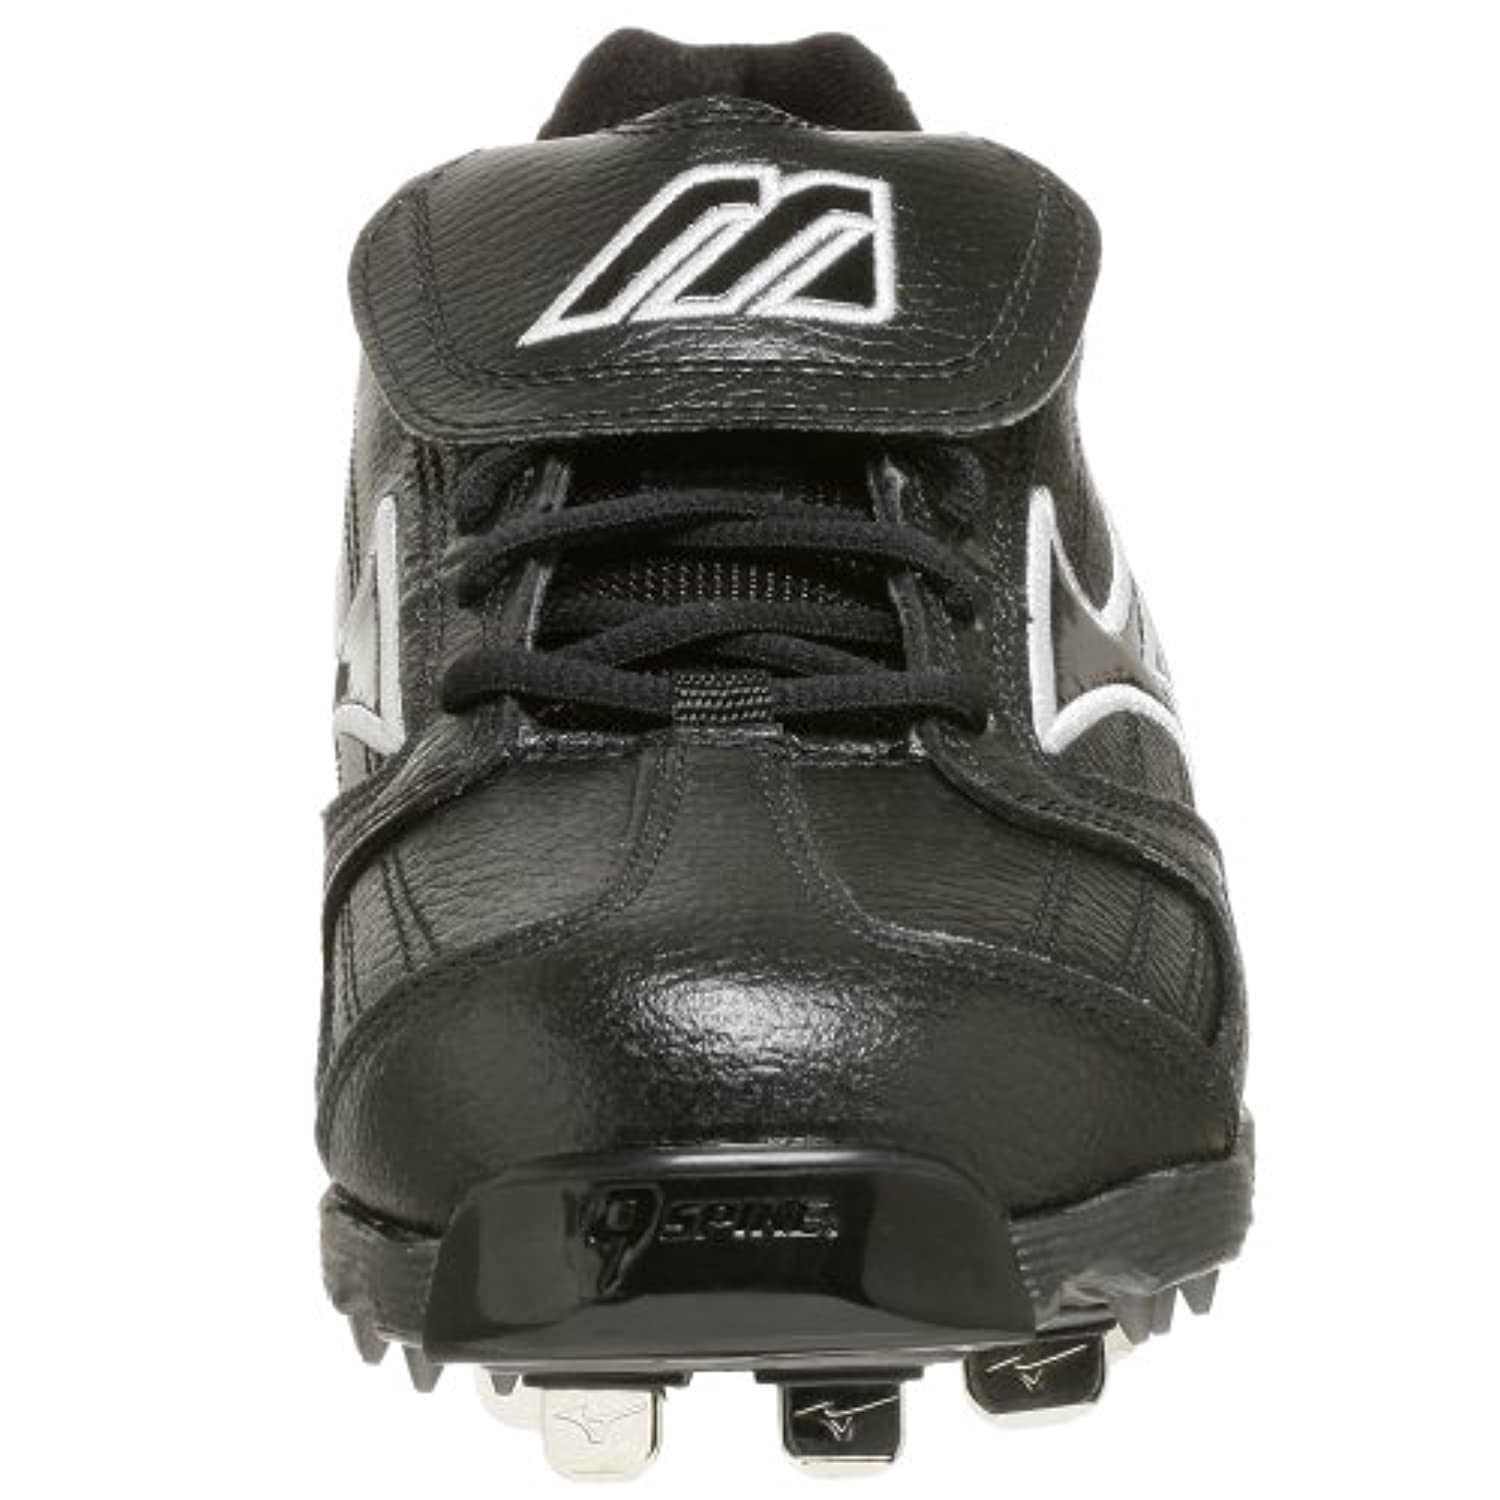 Mizuno Men's 9-Spike Classic Low G4 Cleat,Black,8 M